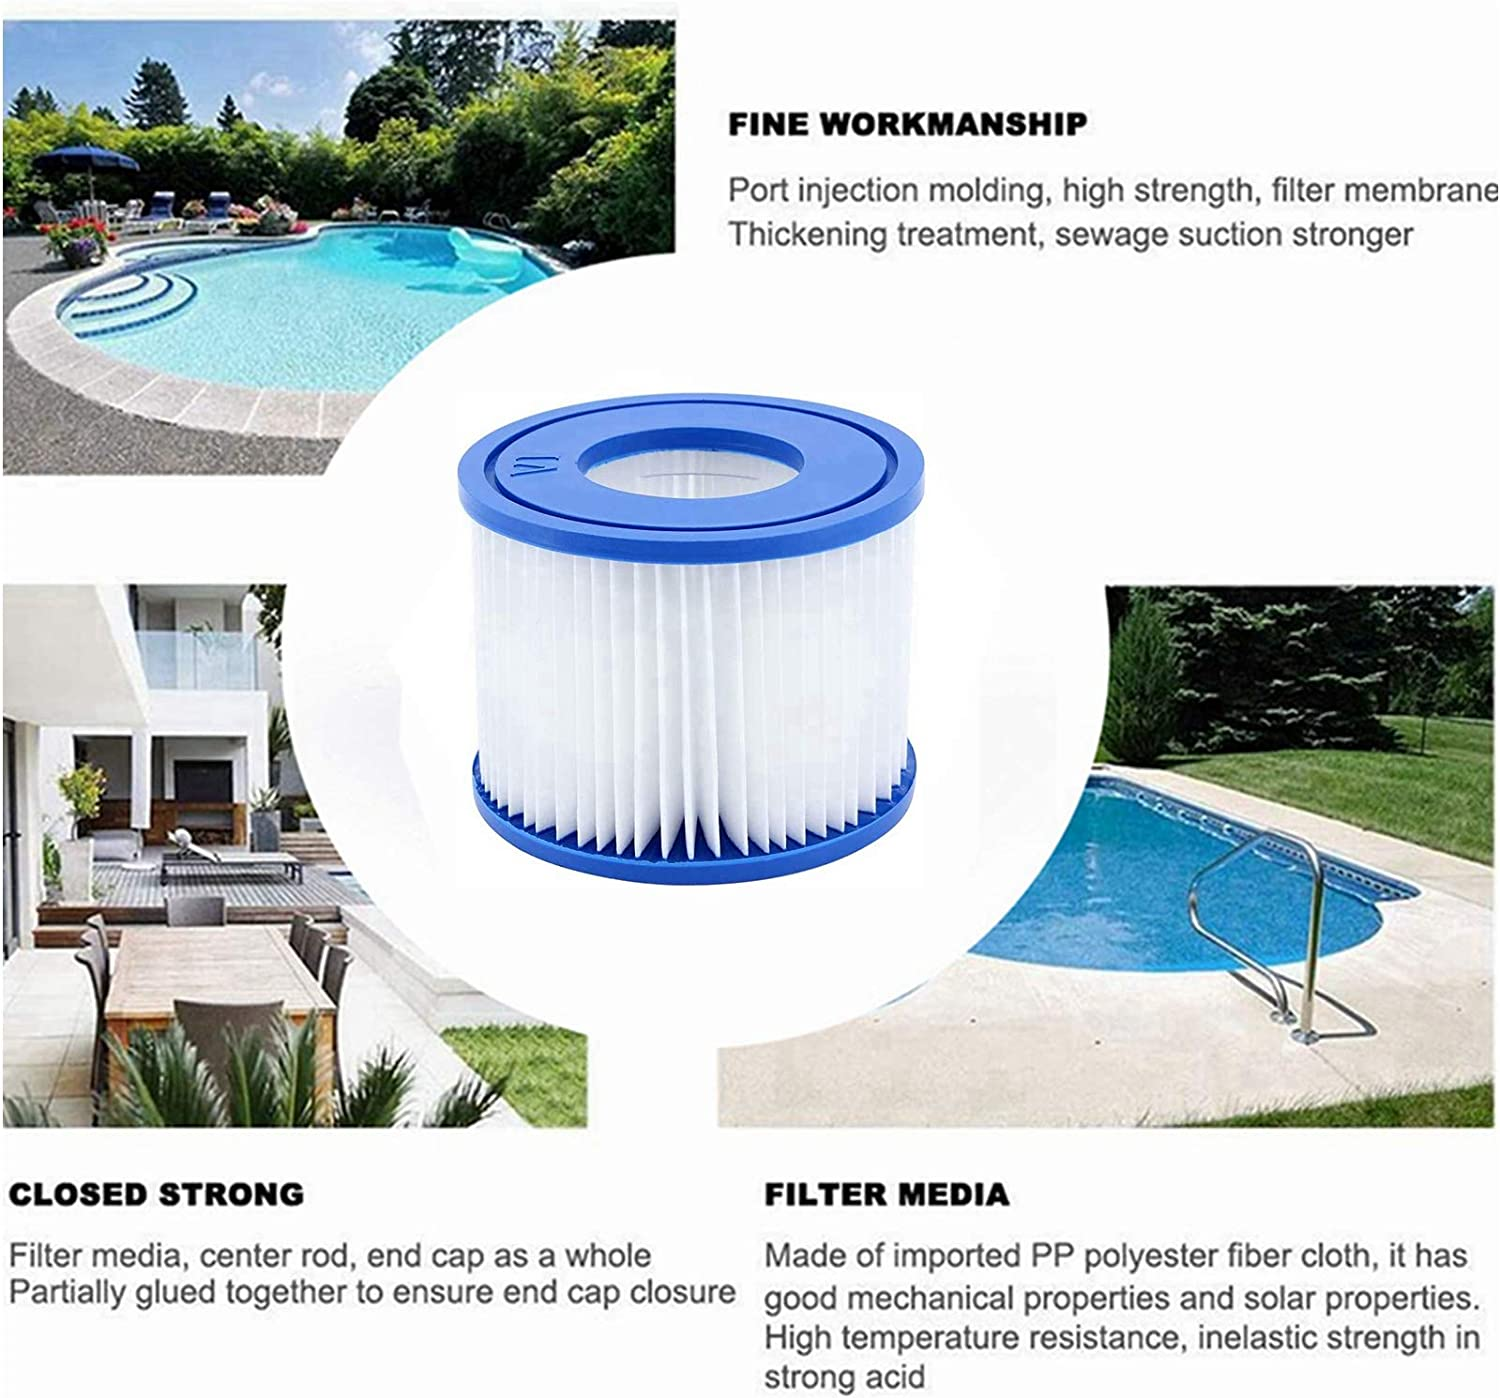 4 Pack SKTLBB Hot Tub Replacement Cartridge for Bestway Type VI Pool Filters,Replacement Cartridge for Bestway Coleman SaluSpa 90352E Swimming Pool Filters Pump Type VI Cartridge